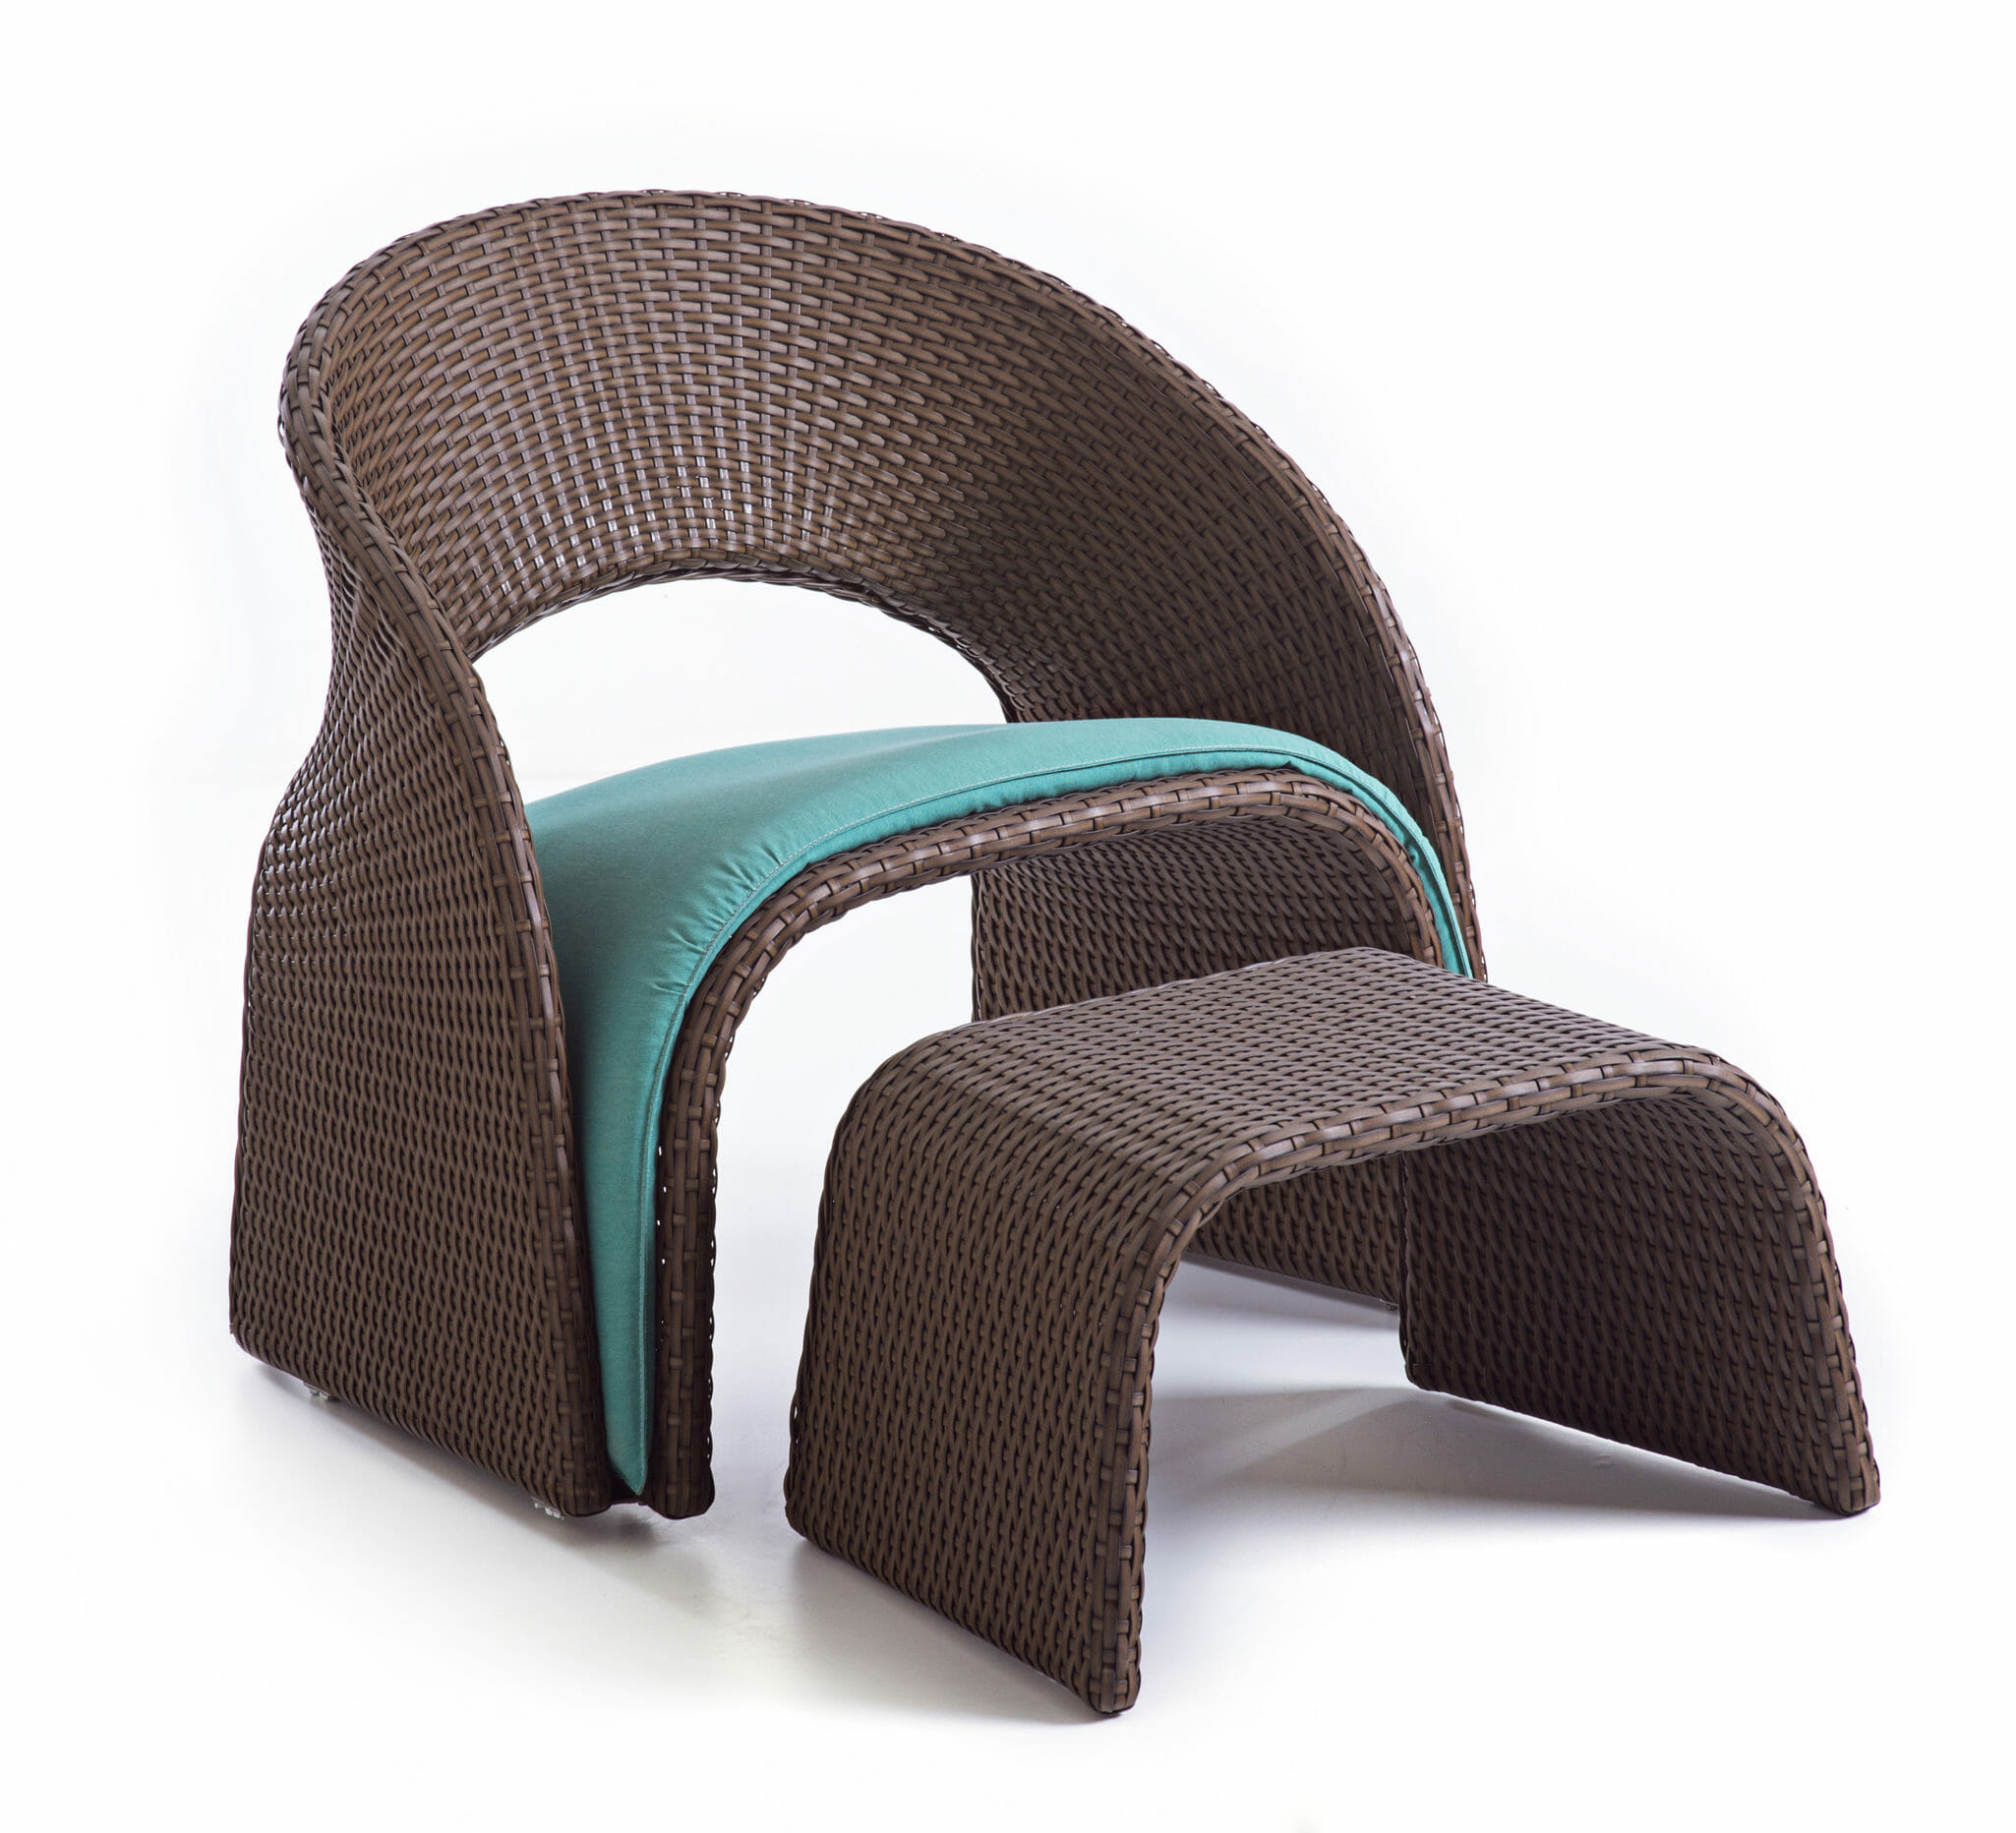 Lattoog Design poltrona Marapendi